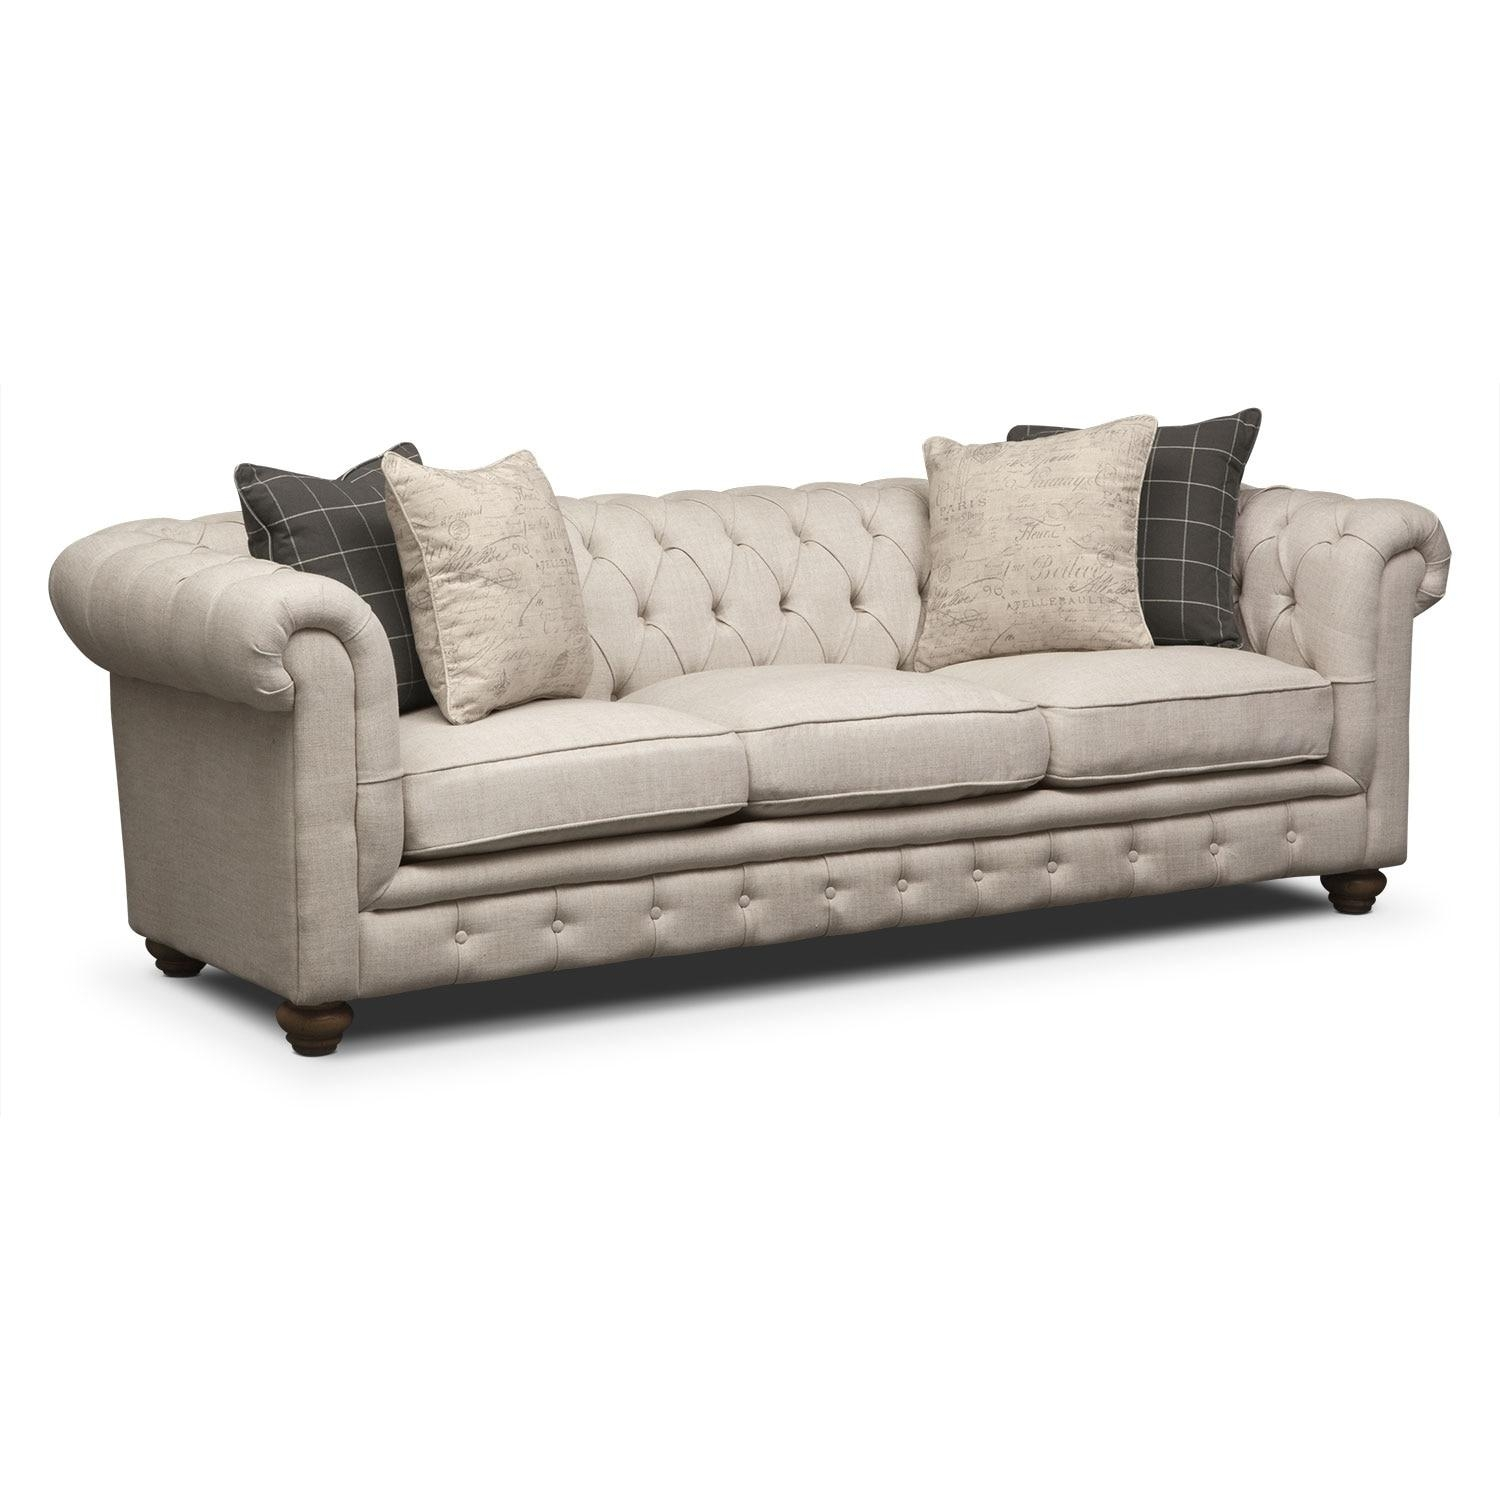 The Madeline Collection – Beige | Value City Furniture Regarding Value City Sofas (Image 19 of 20)